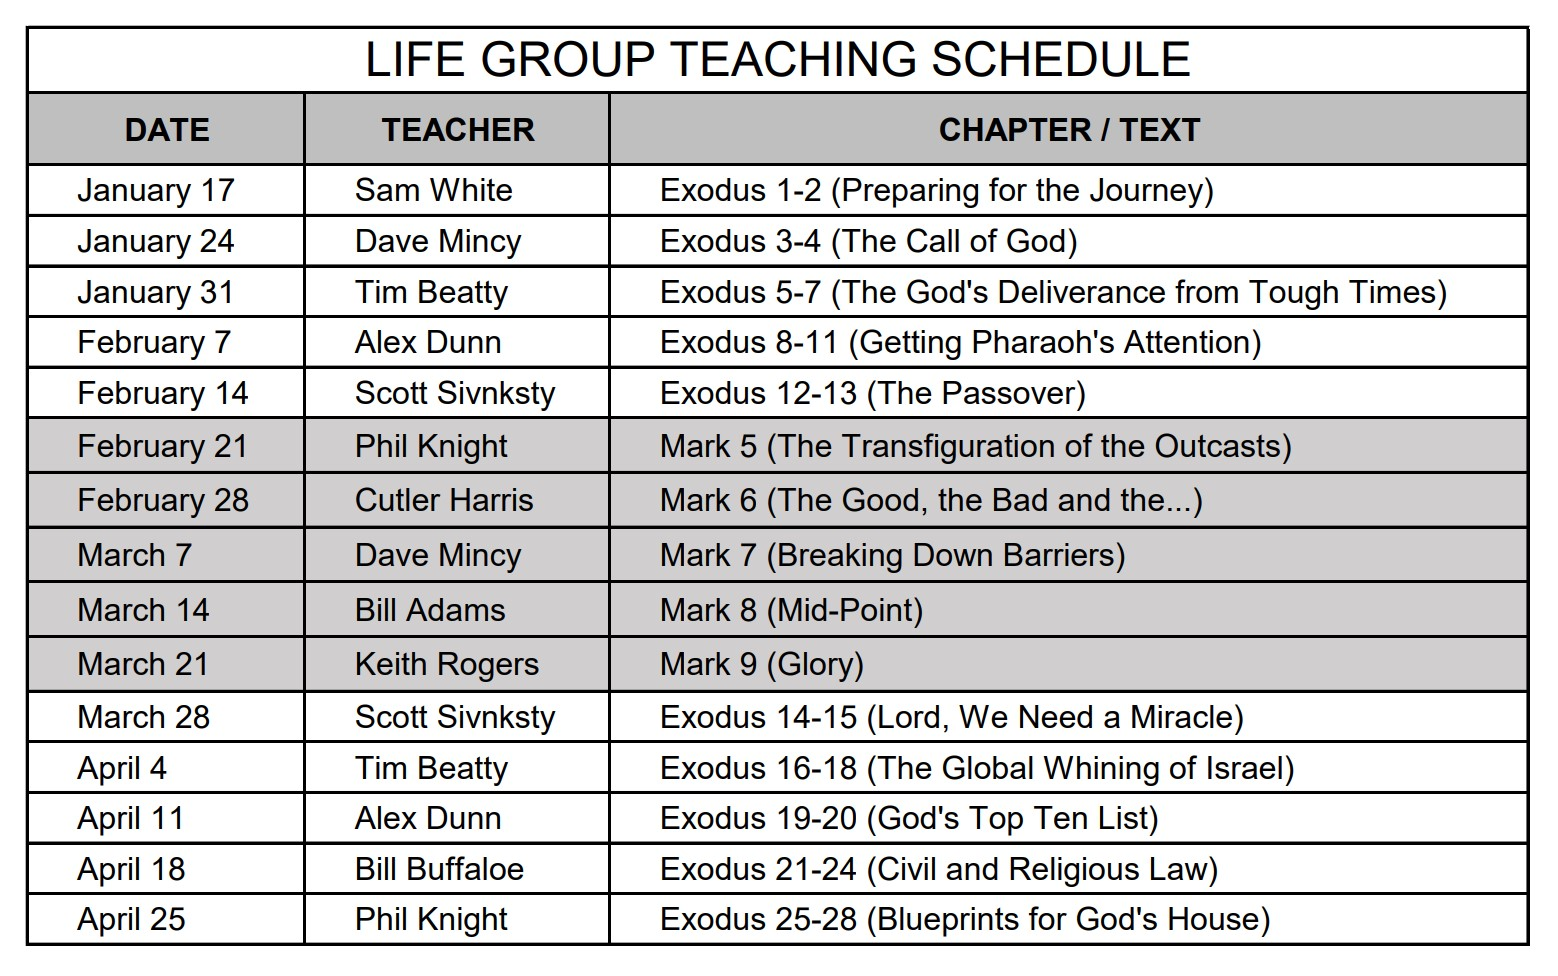 2021 Life Group Teaching Schedule_January-April